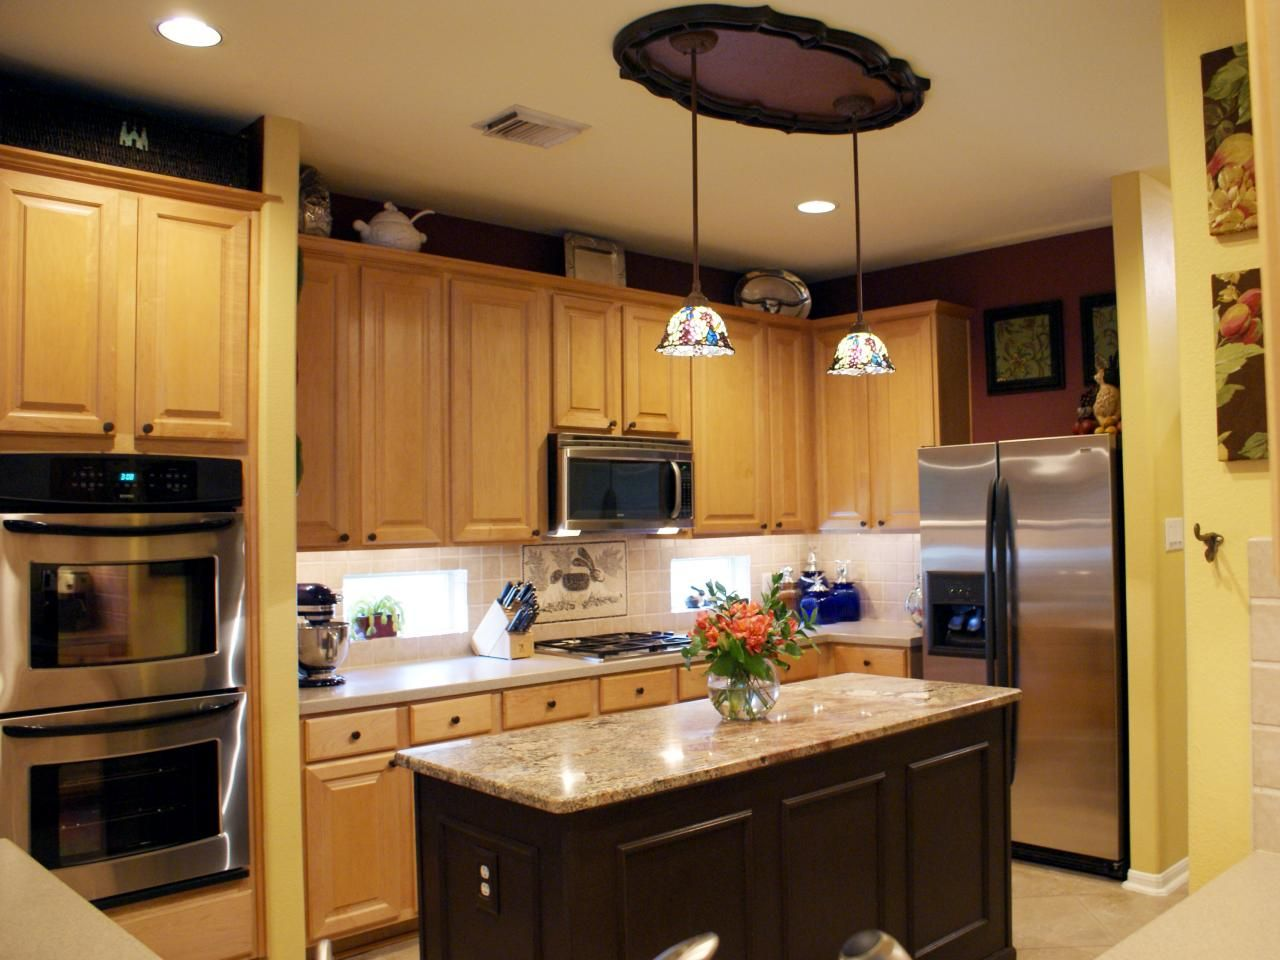 Cabinets: Should You Replace or Reface? | Cost of kitchen ...